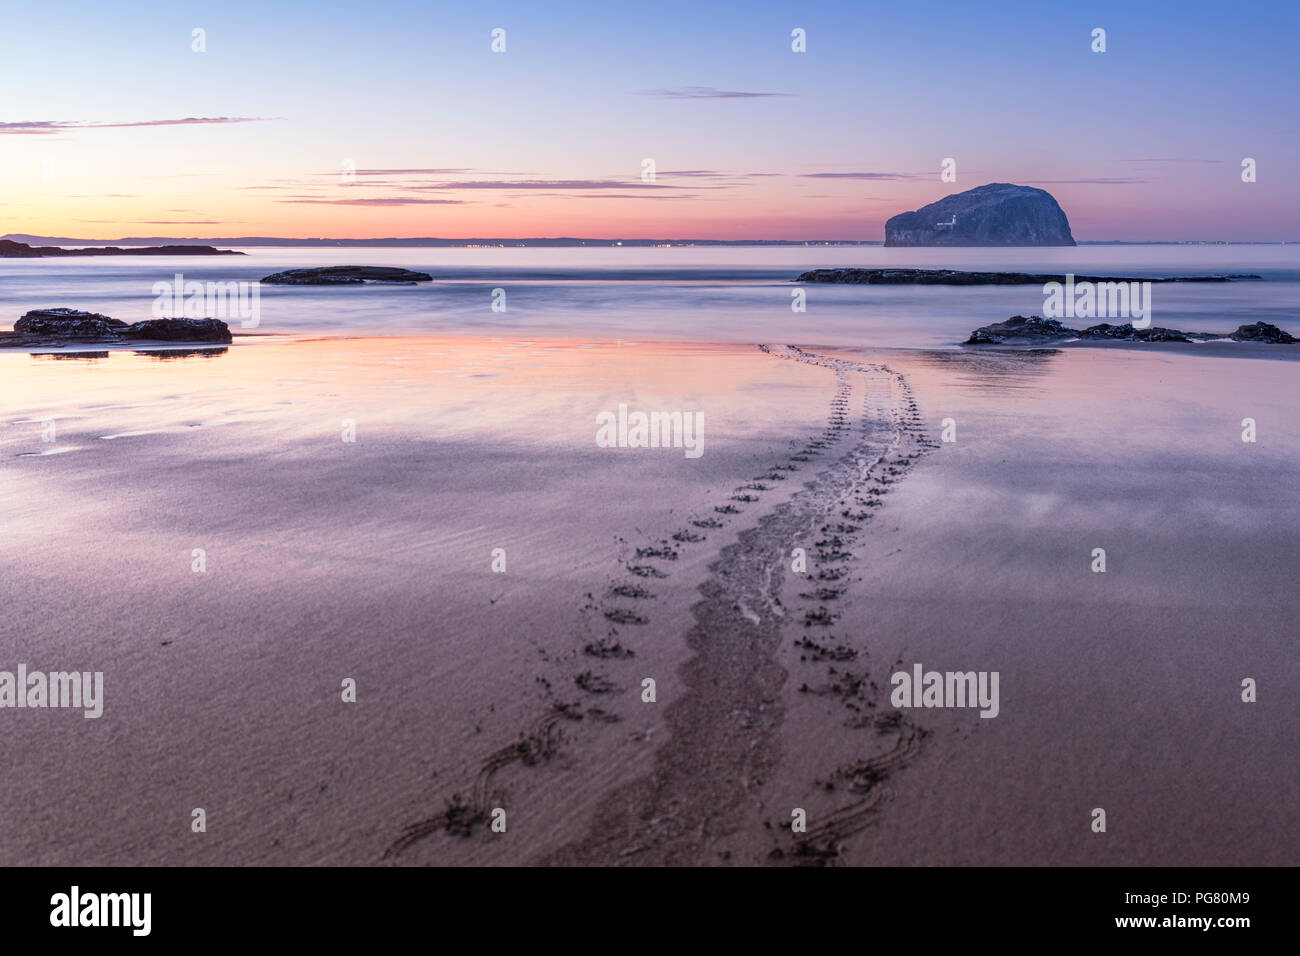 UK, Scotland, East Lothian, North Berwick, Firth of Forth, view of Bass Rock (world famous Gannet Colony) at sunset, Lighthouse, long exposure, sea mo Stock Photo